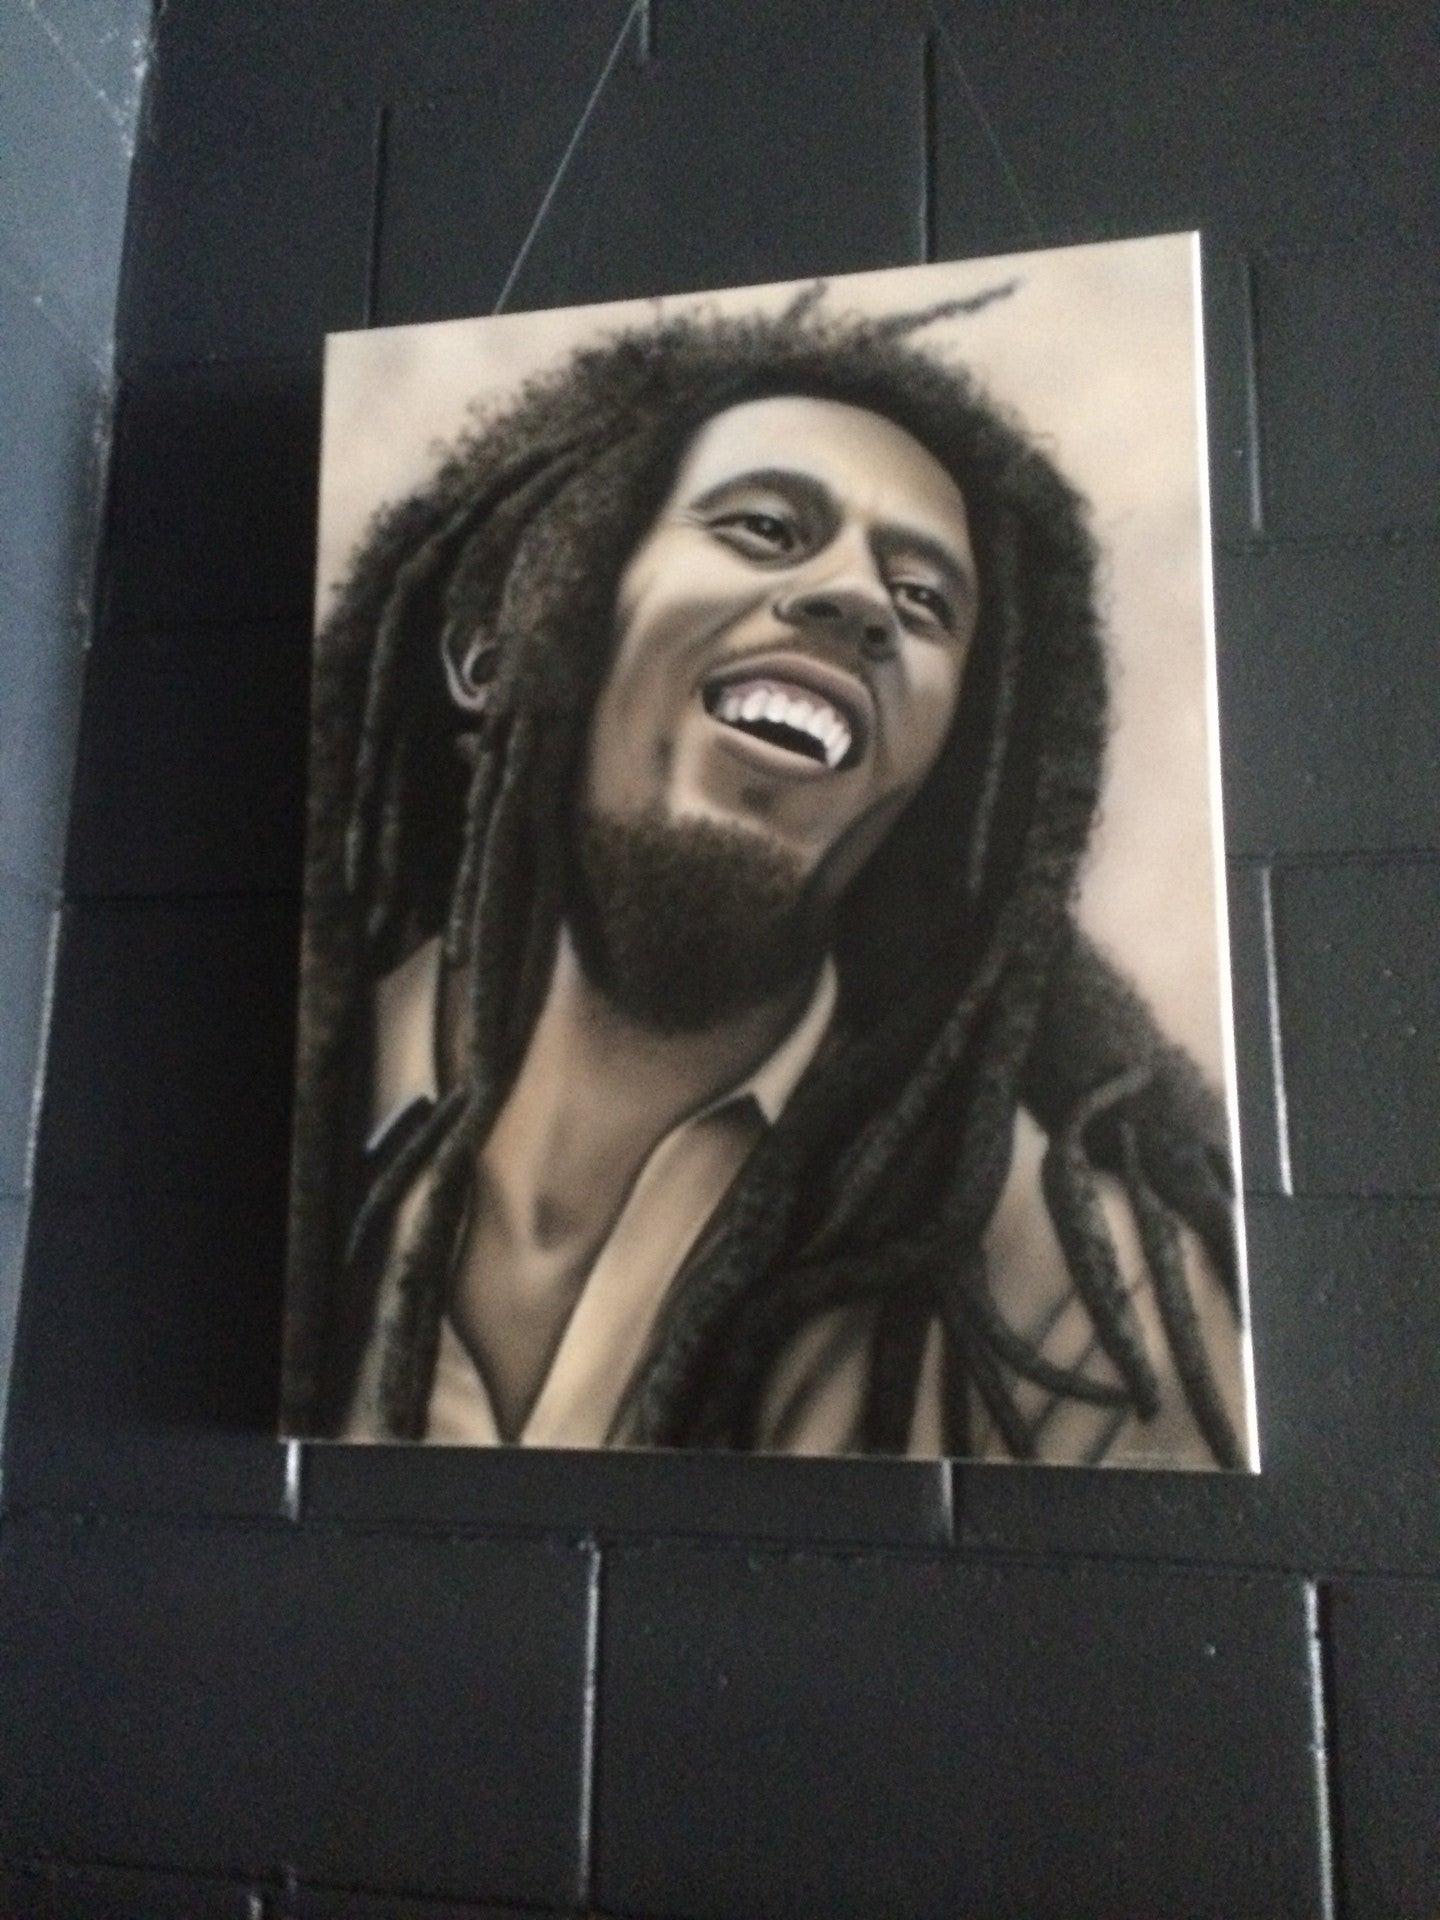 MARLEY BOB-AIRBRUSHED PORTRAIT